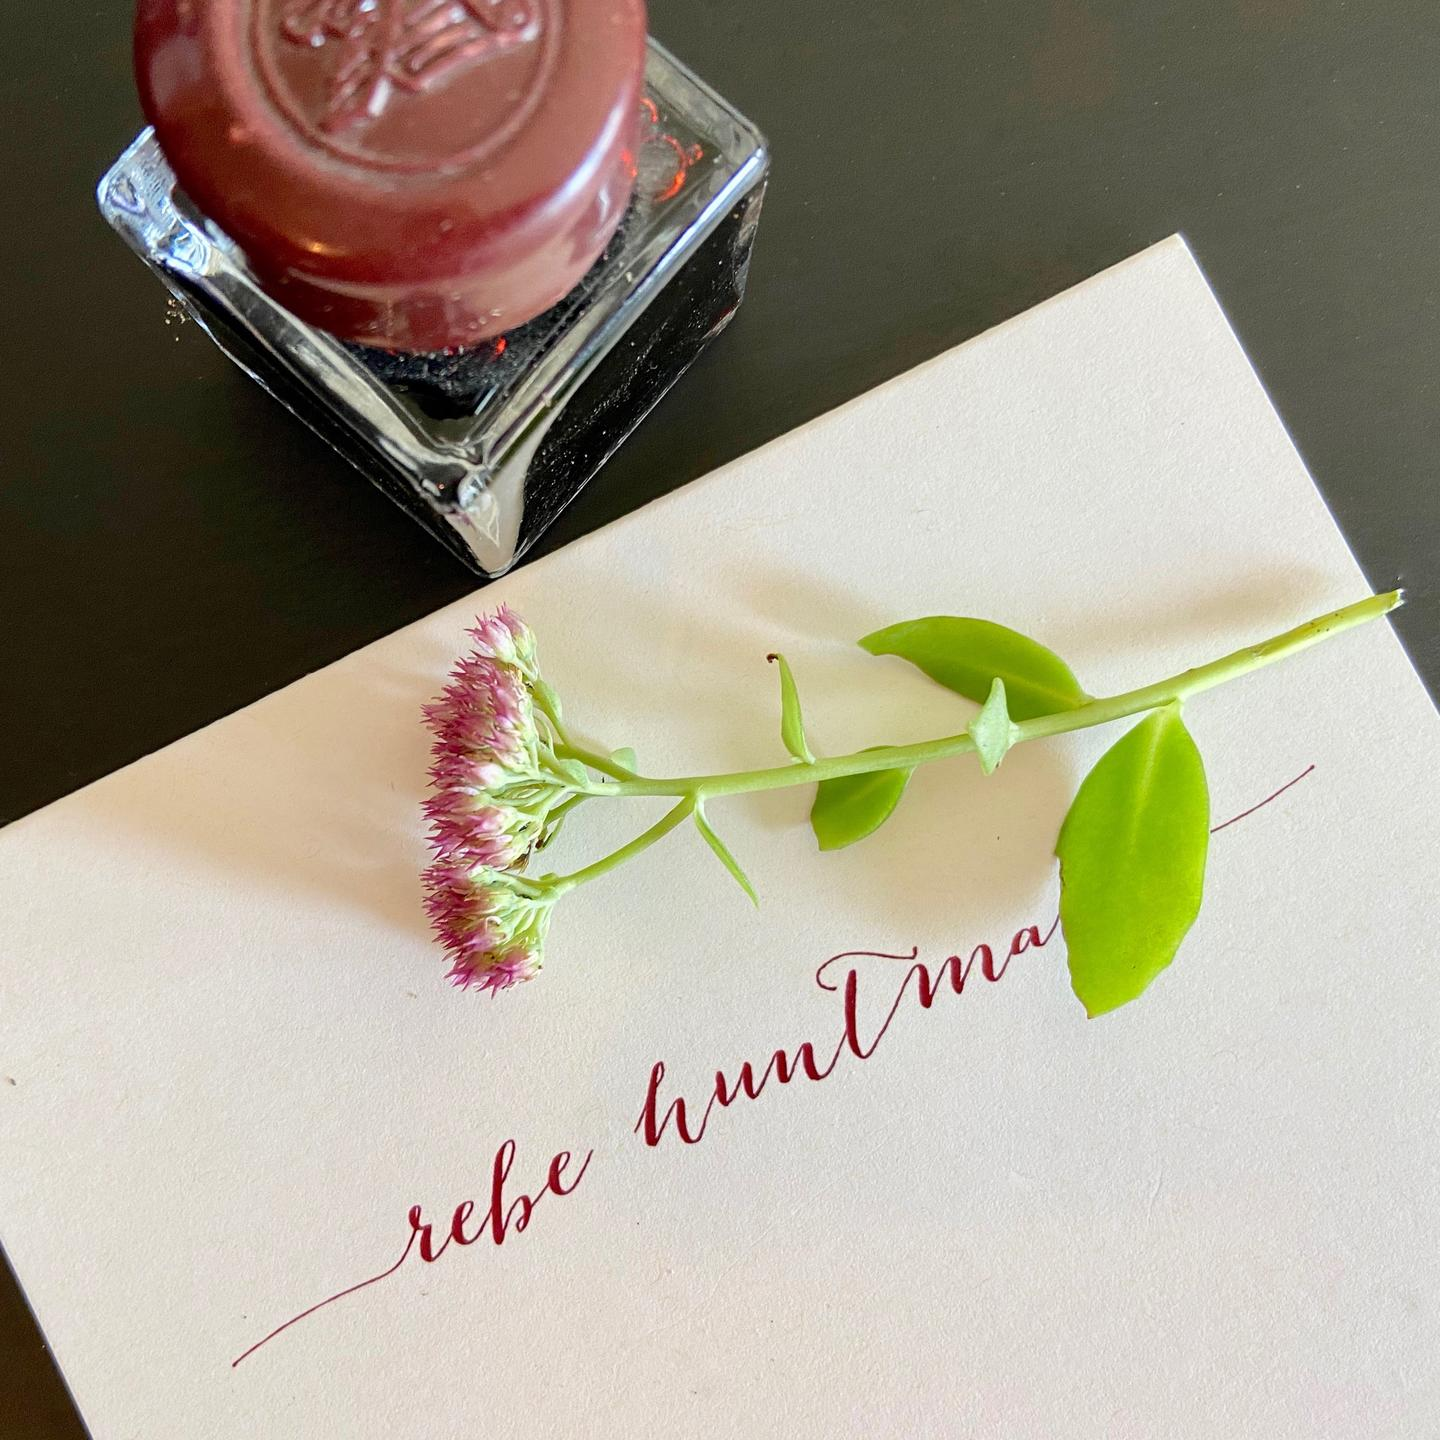 Writer Rebe Huntman's calligrapy stationery with magenta ink bottle